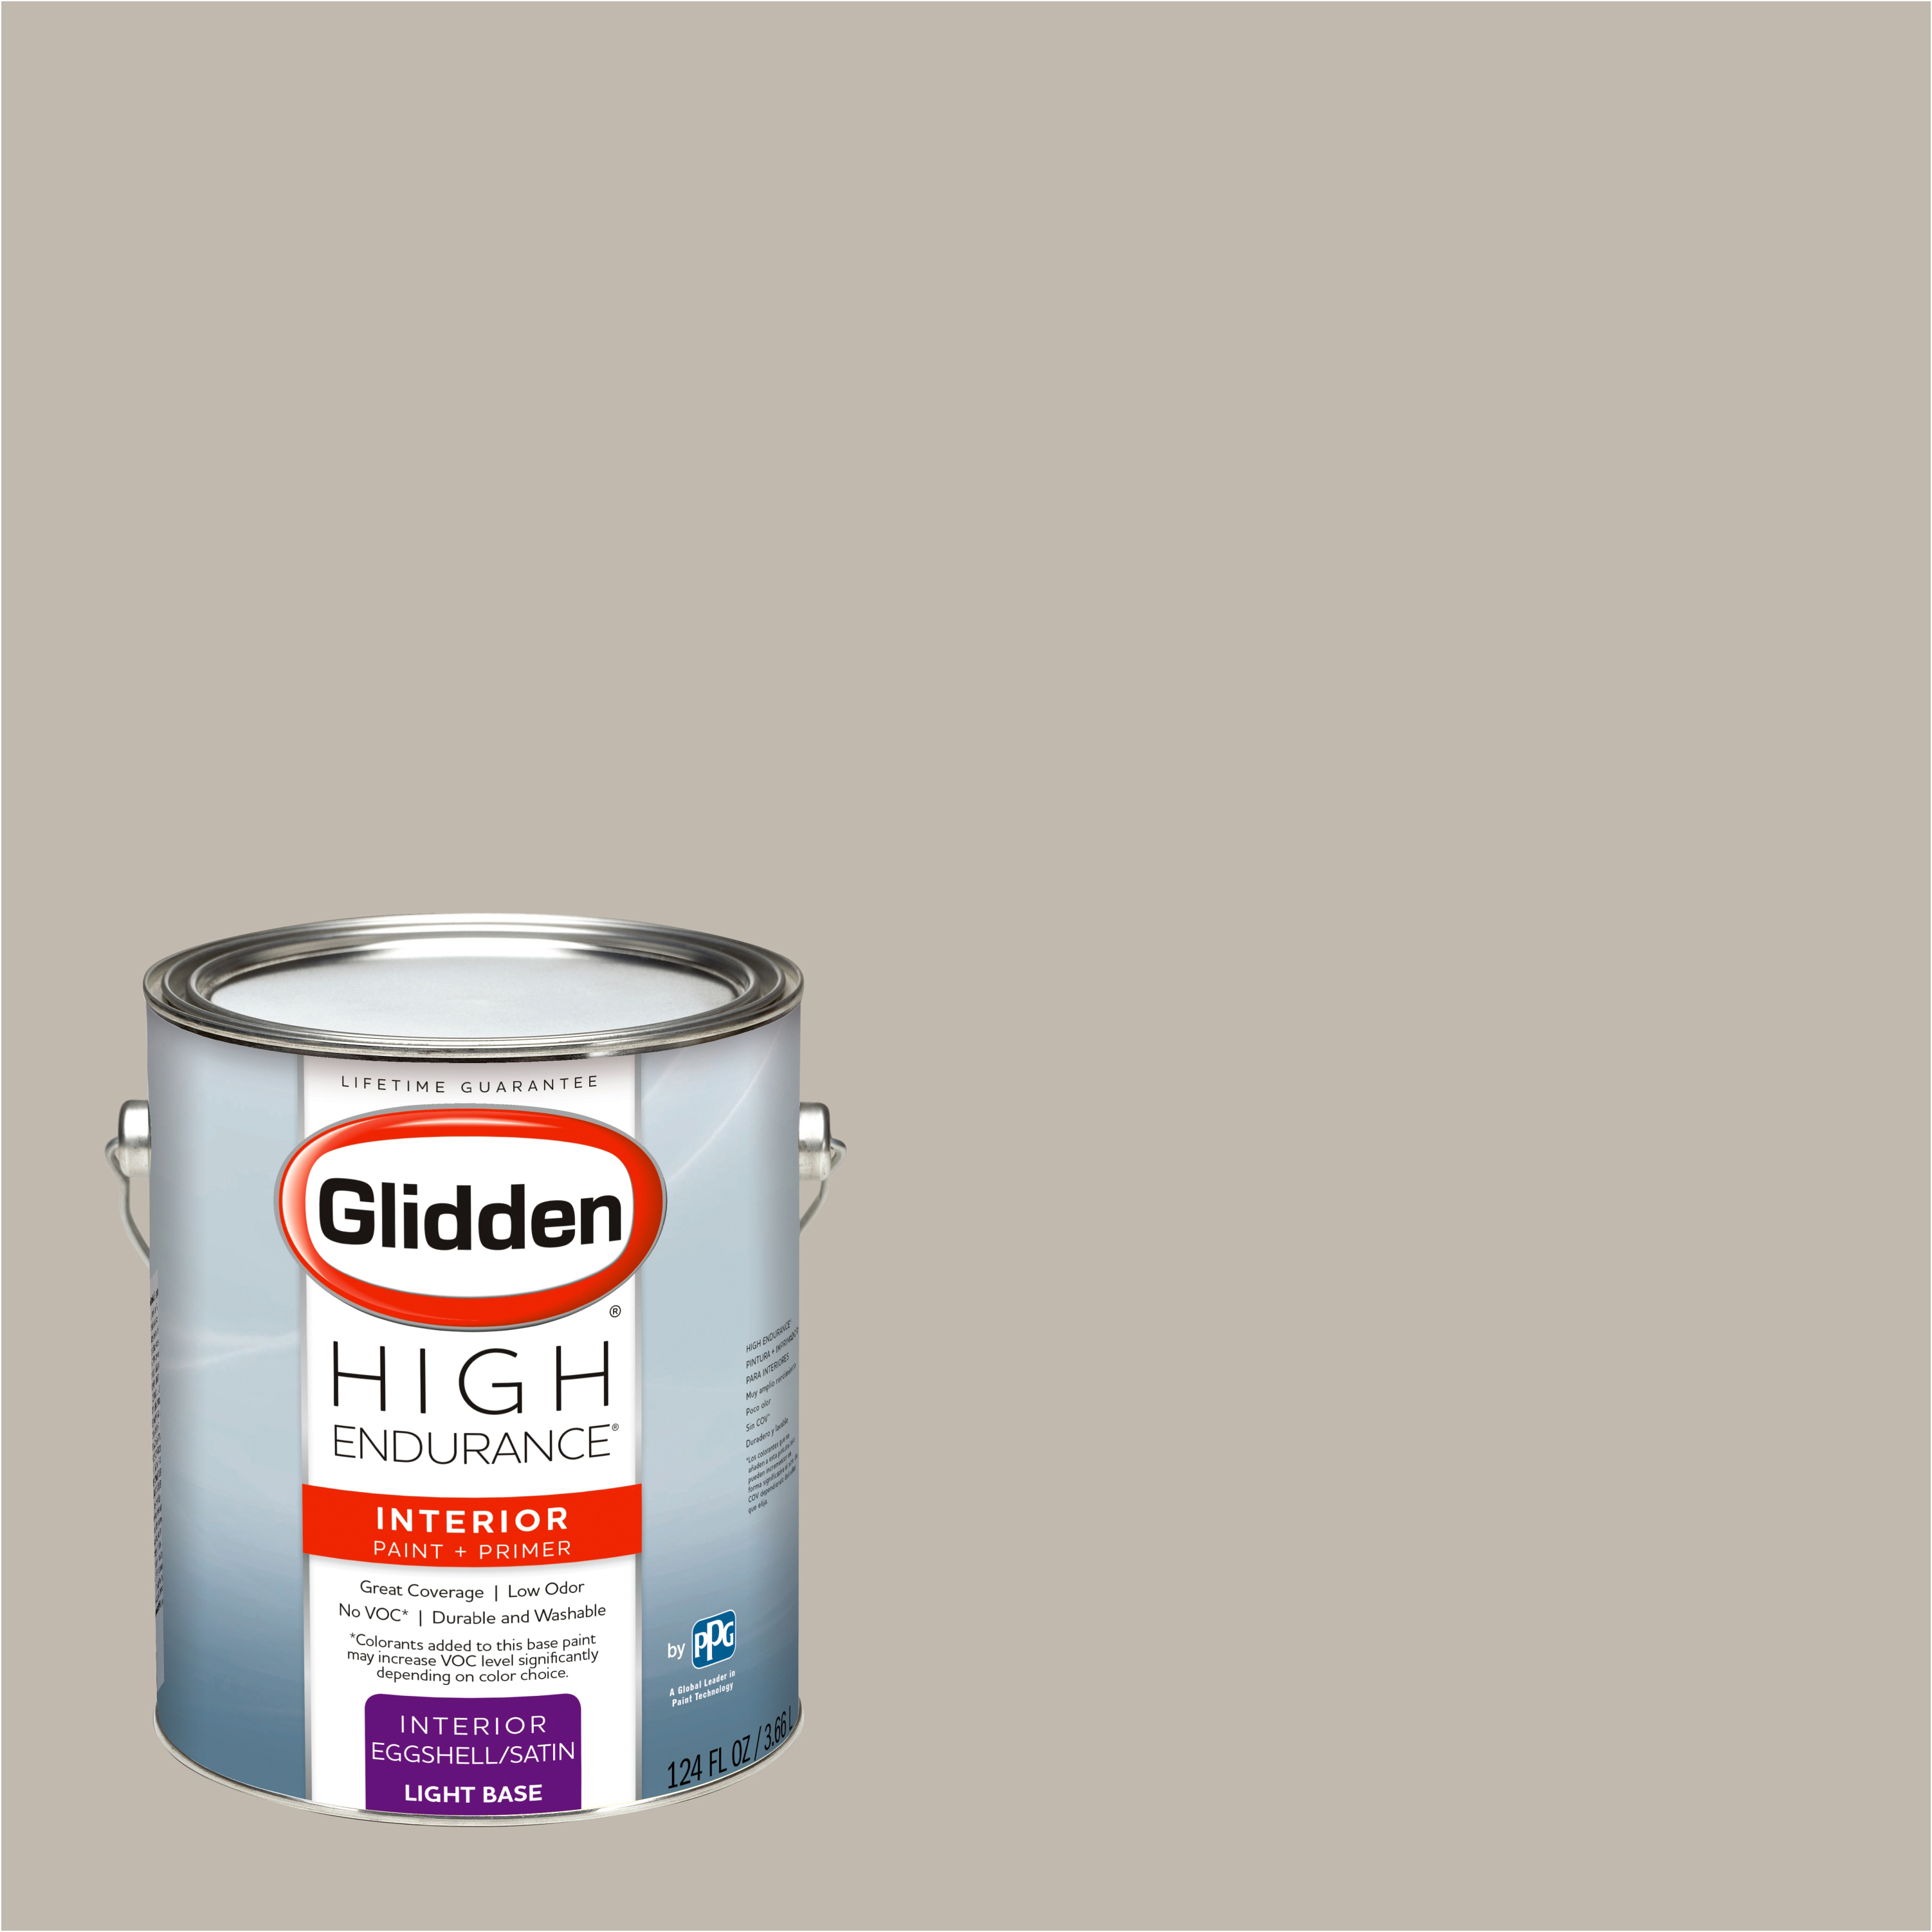 Glidden High Endurance, Interior Paint and Primer, Silver Clamshell, #30YY 49/071